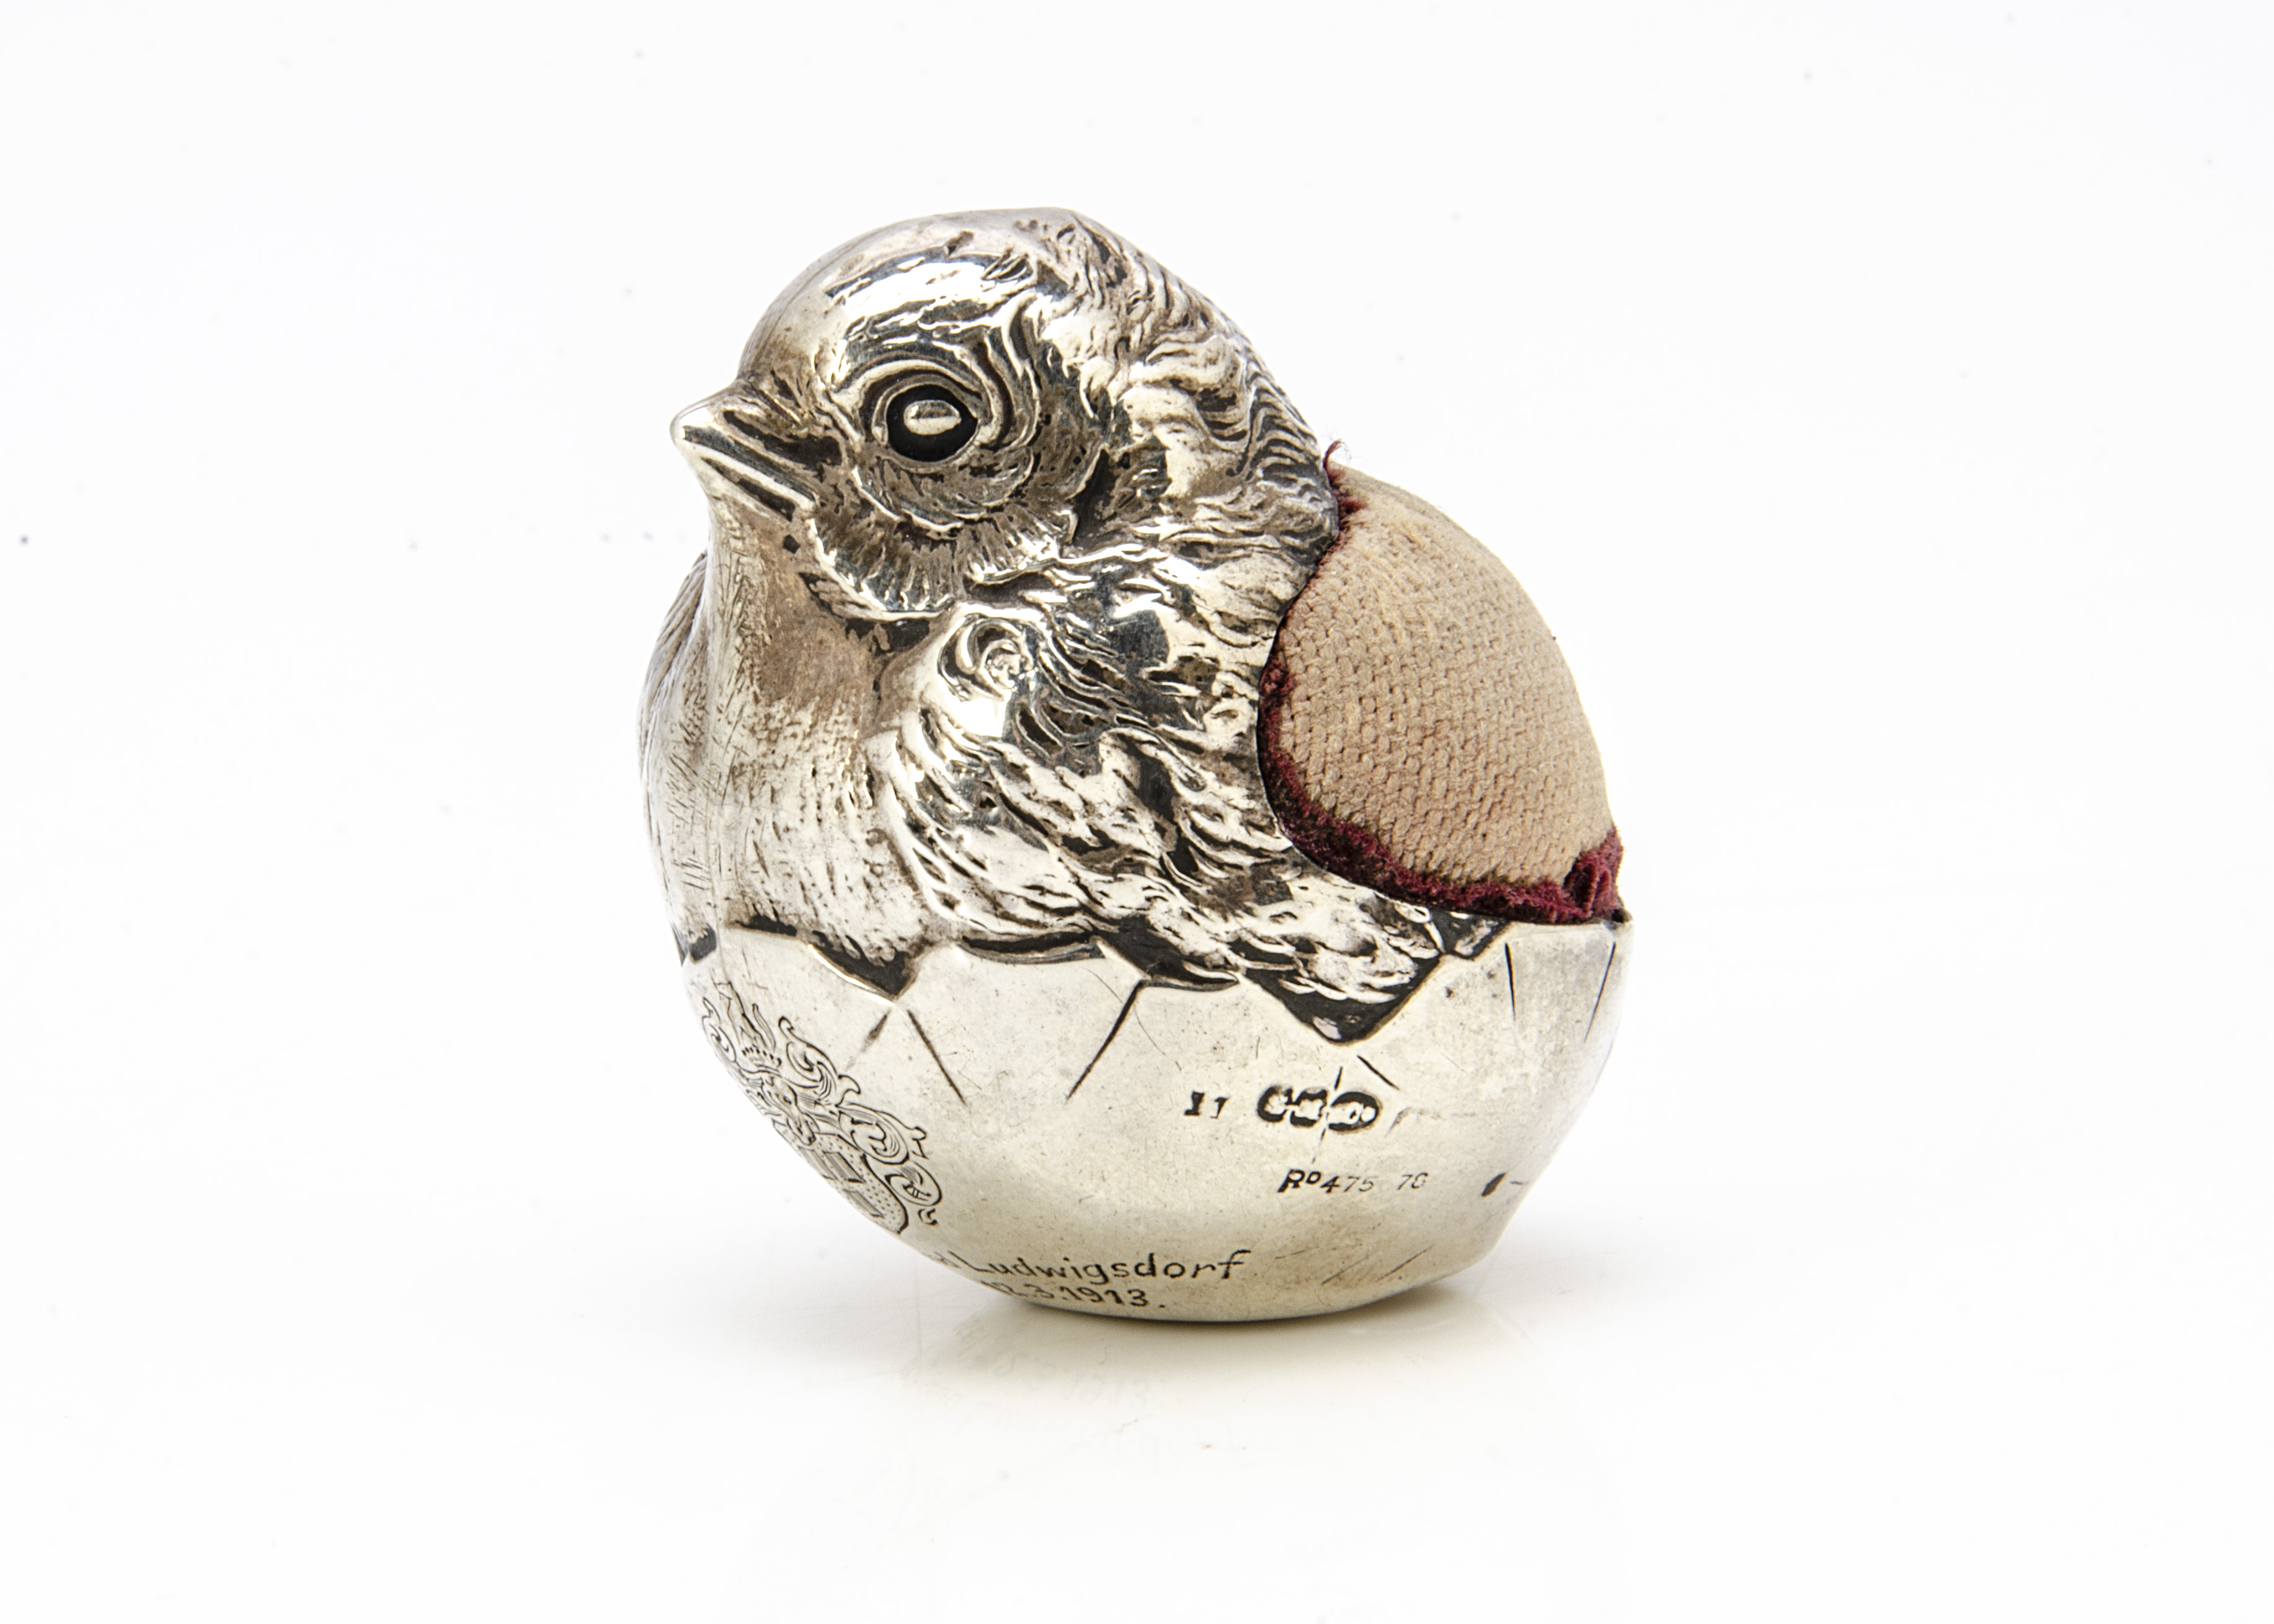 An Edwardian silver filled novelty pin cushion by Sampson Mordan & Co, in the form of a chick